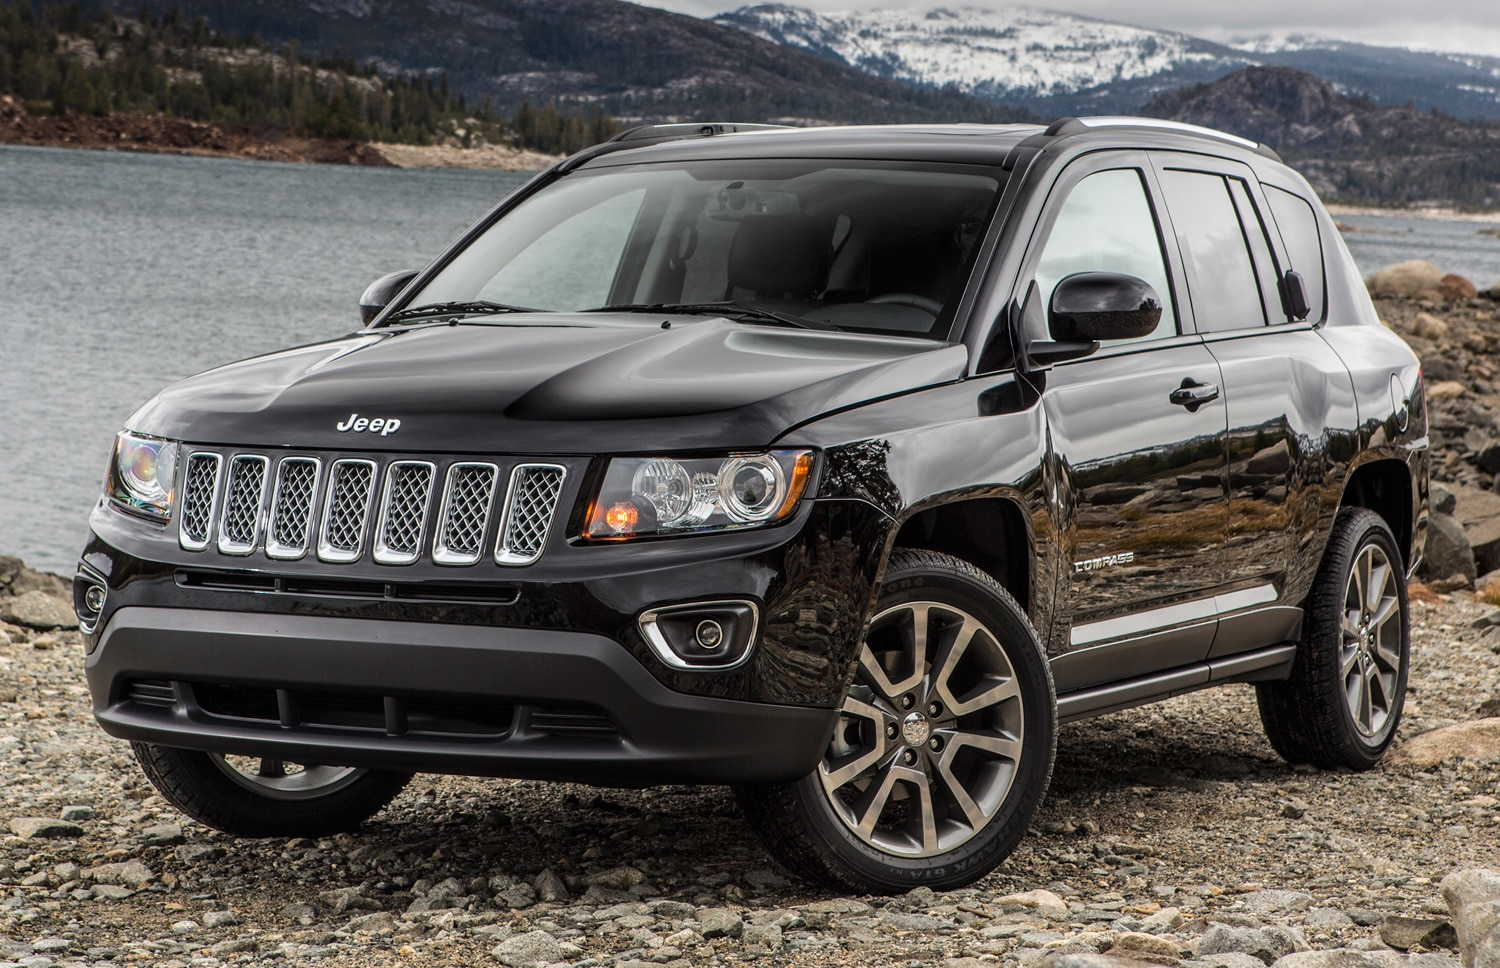 2014 Jeep Compass Limited Front View1